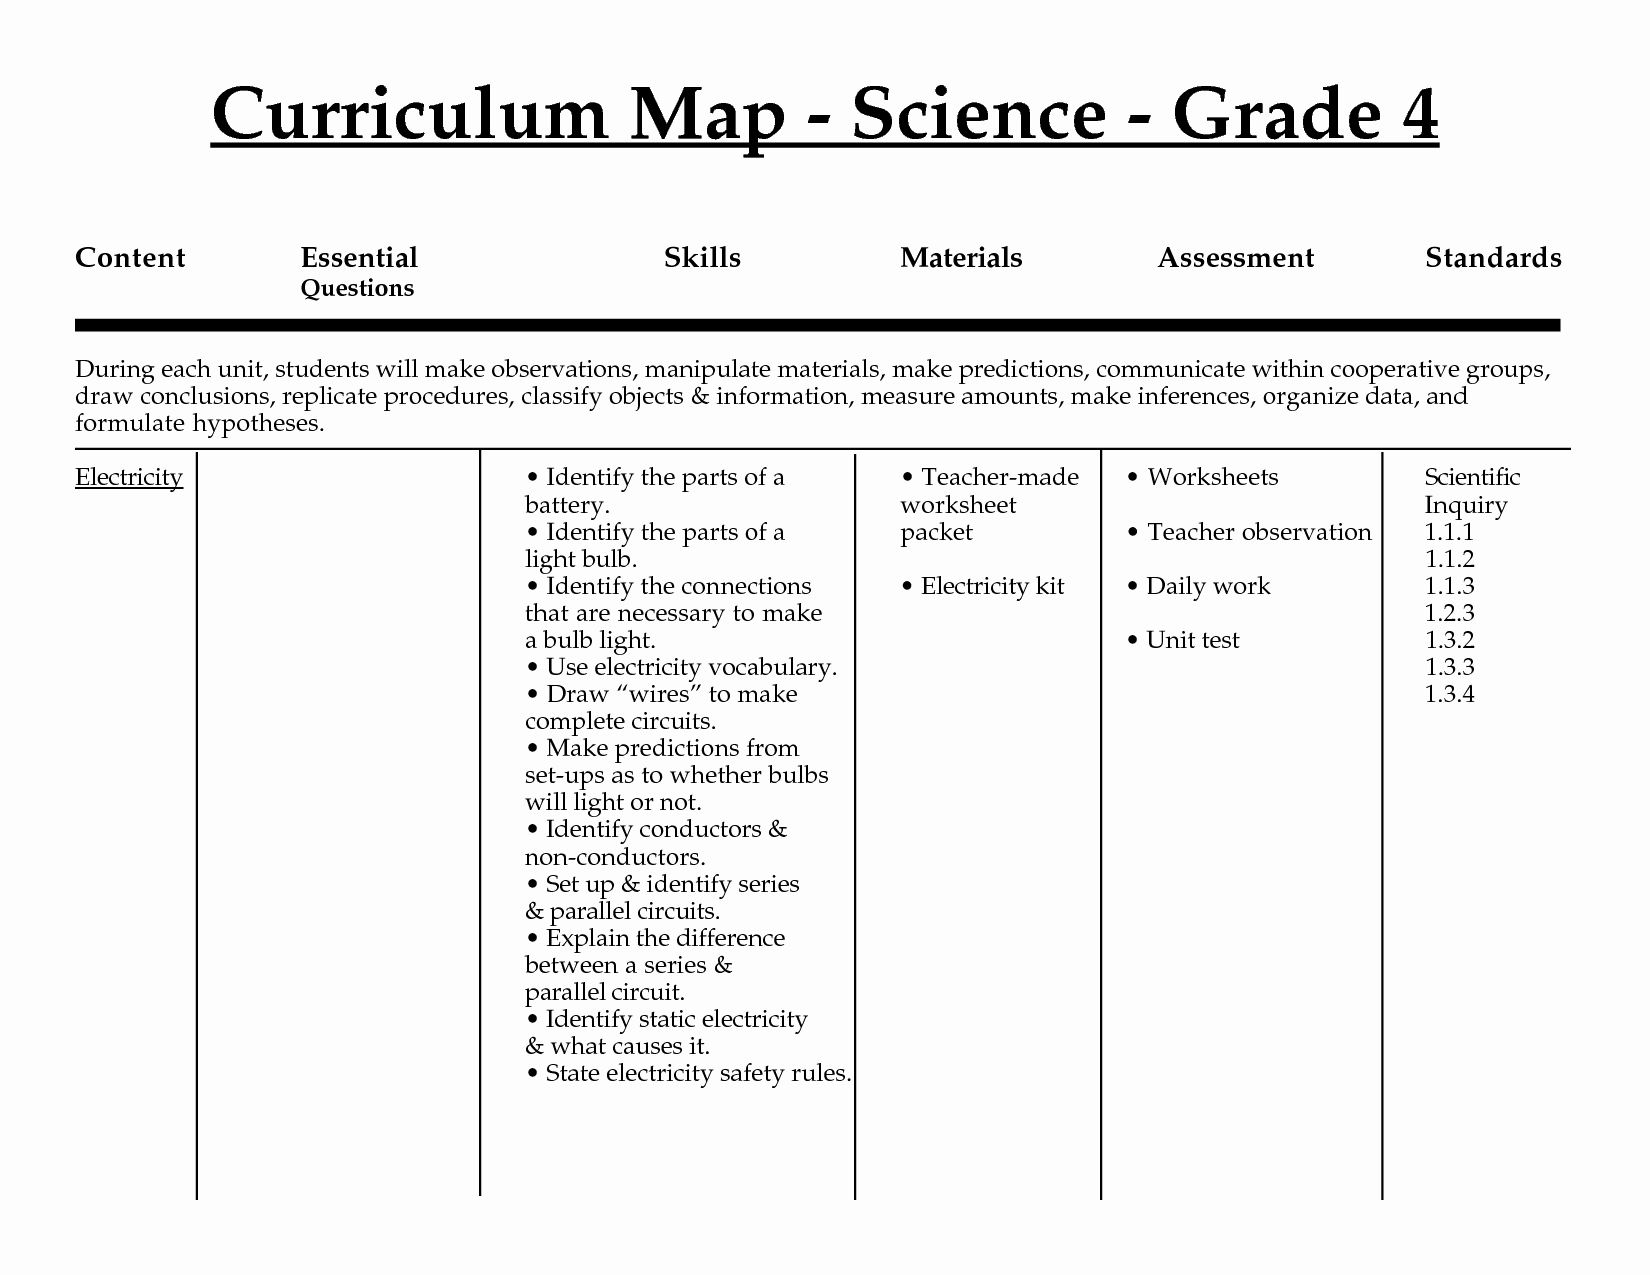 4Th Grade Science Printable Worksheets Unique High School Science | Science Worksheets For 4Th Grade Free Printable